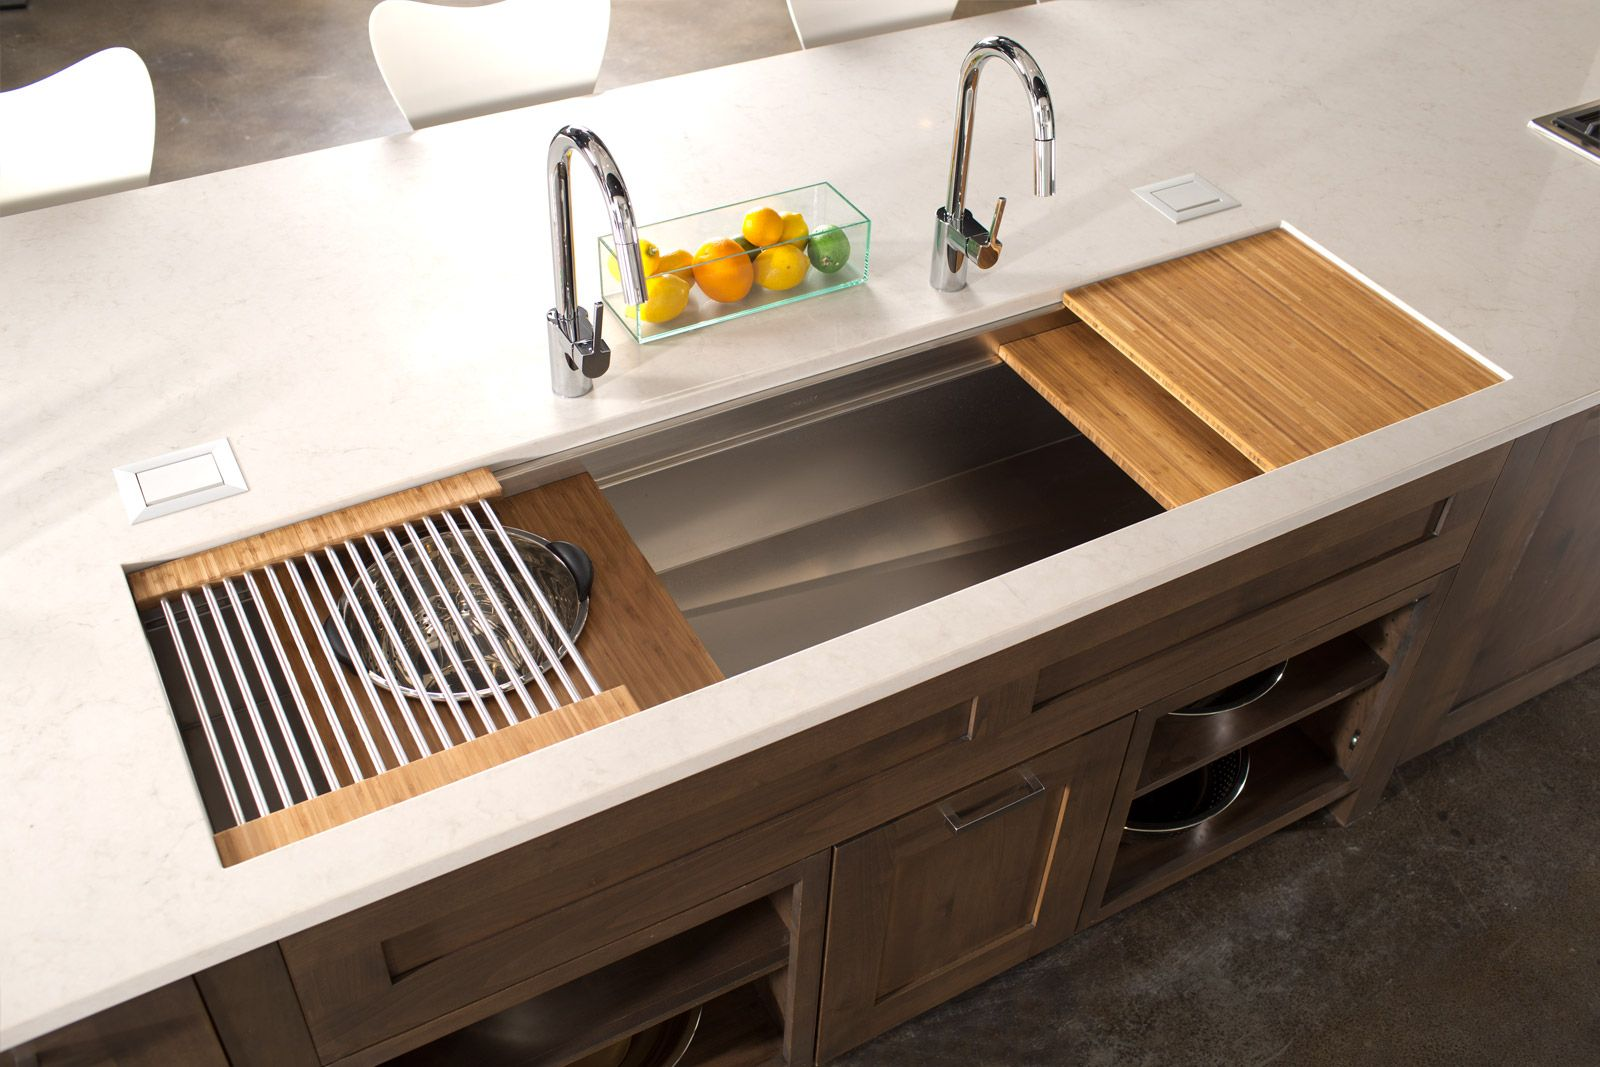 The Galley Sink Apparently The New Trend In Kitchen Sinks Should